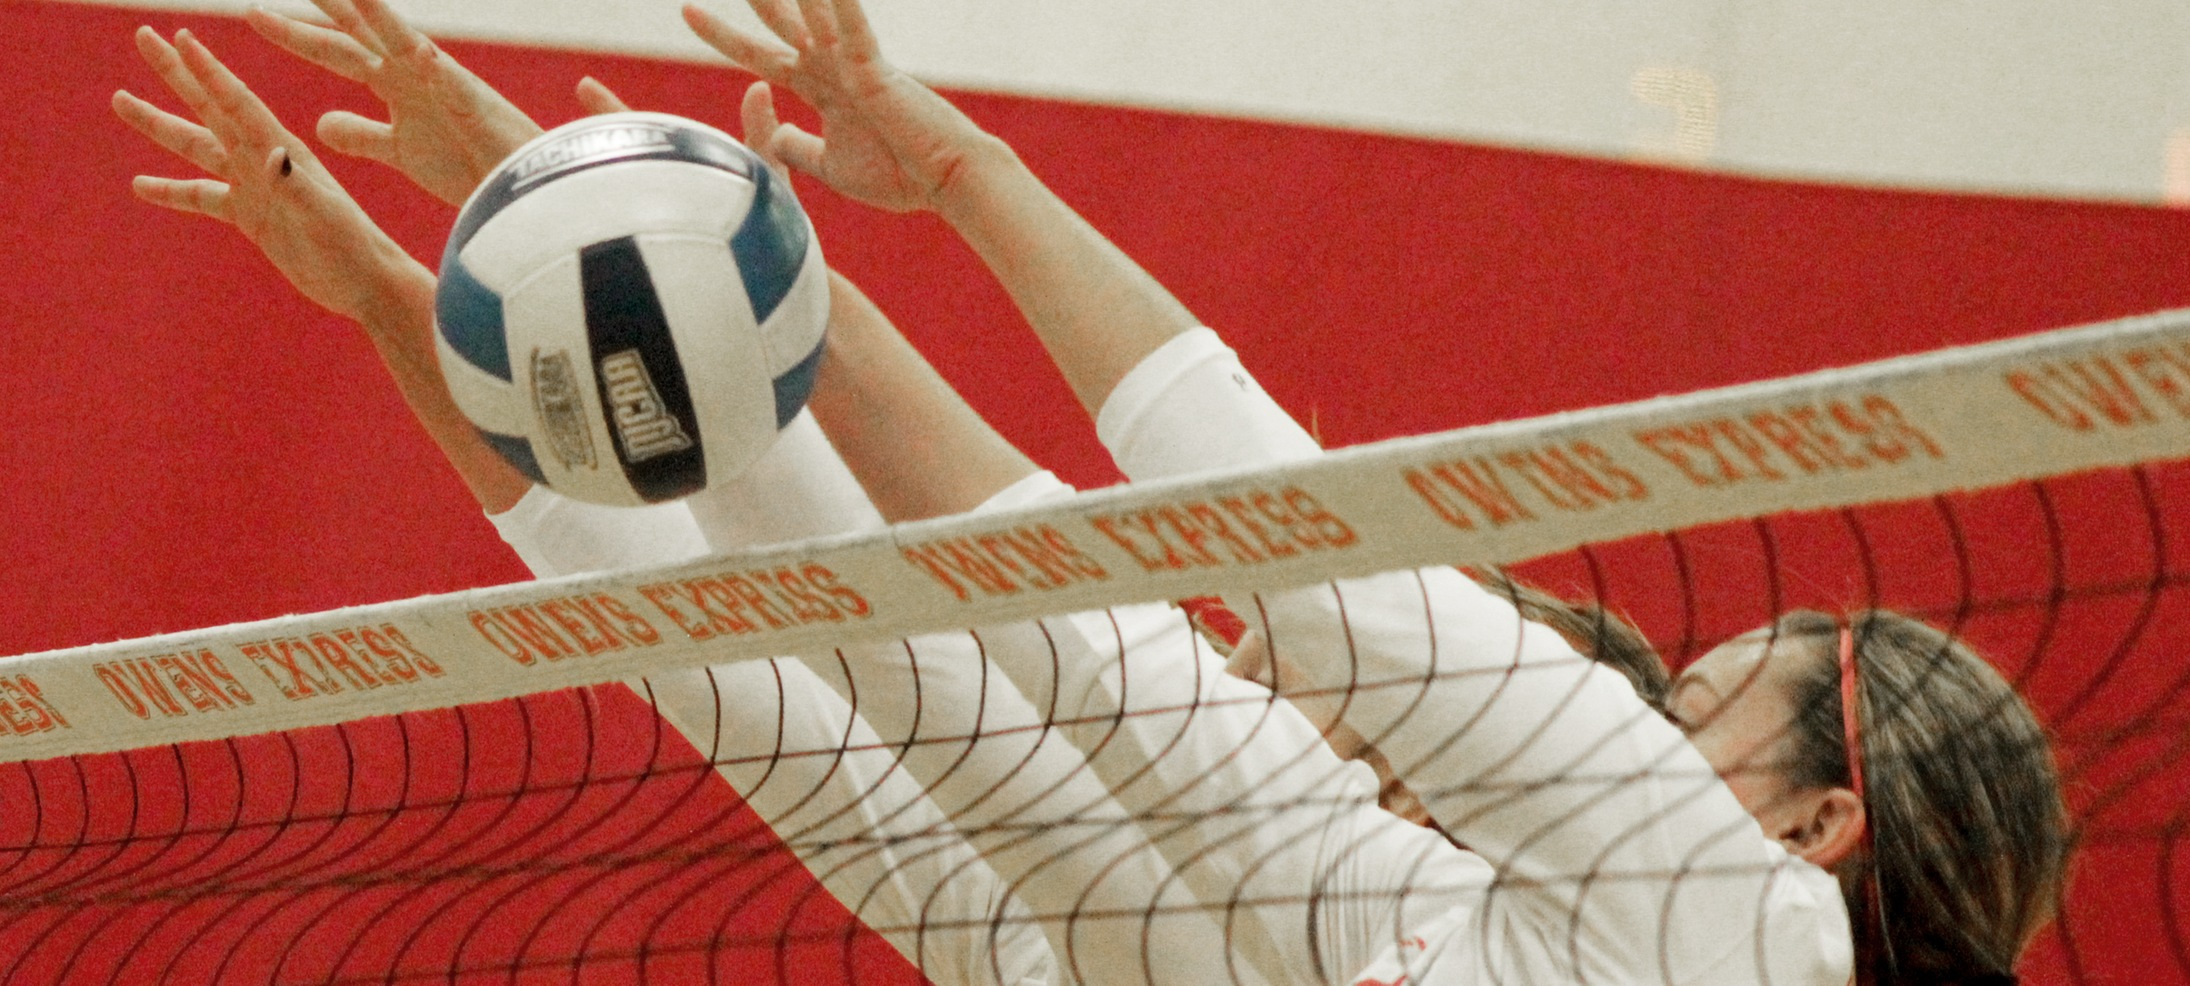 Owens Volleyball Vaults To No. 2 In Latest NJCAA D-II Poll